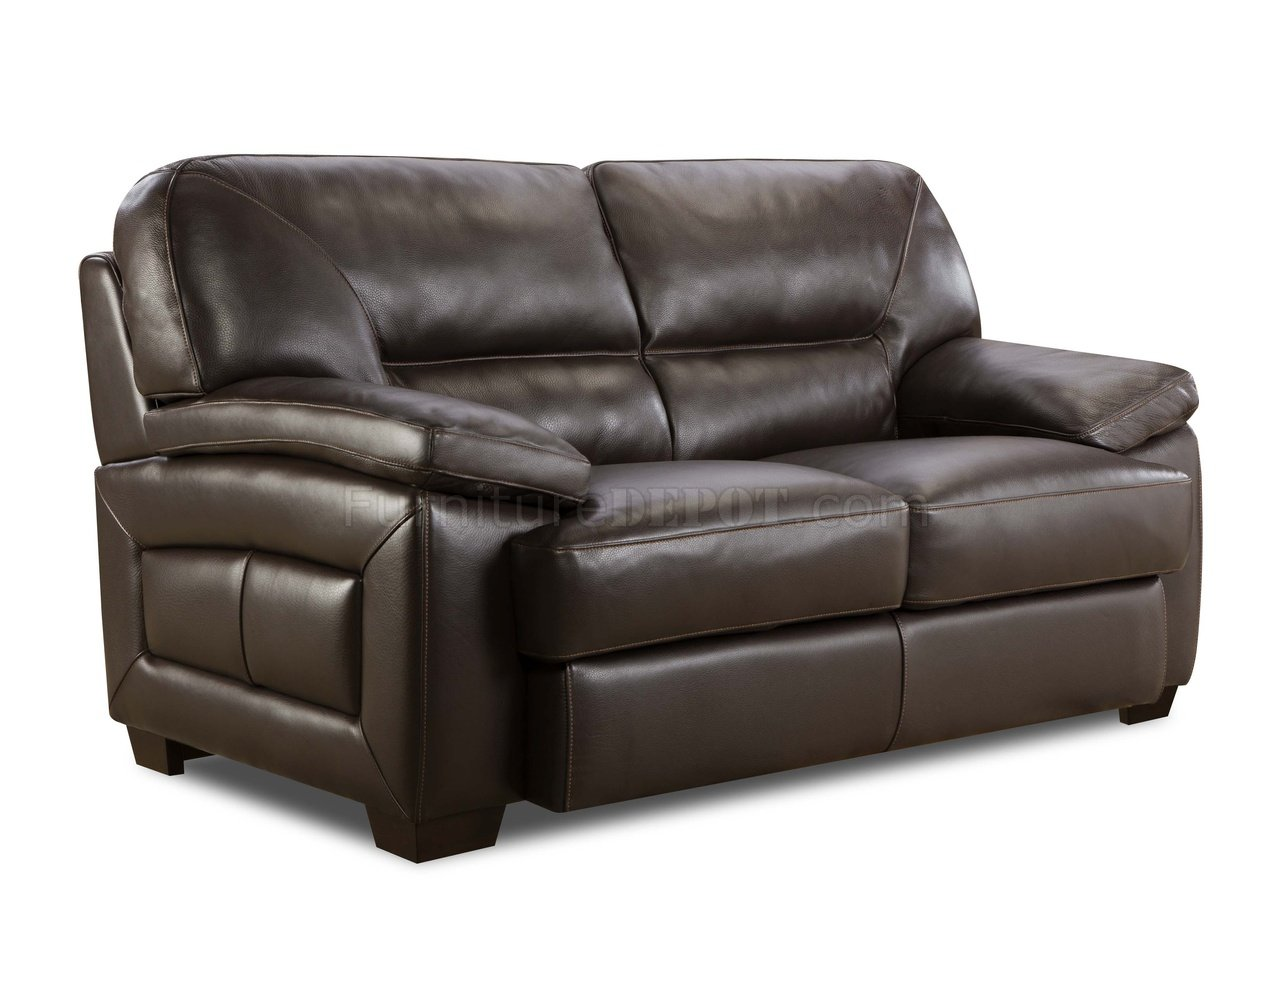 top grain leather sofa set best sectional sofas apartment therapy truffle brown modern and loveseat